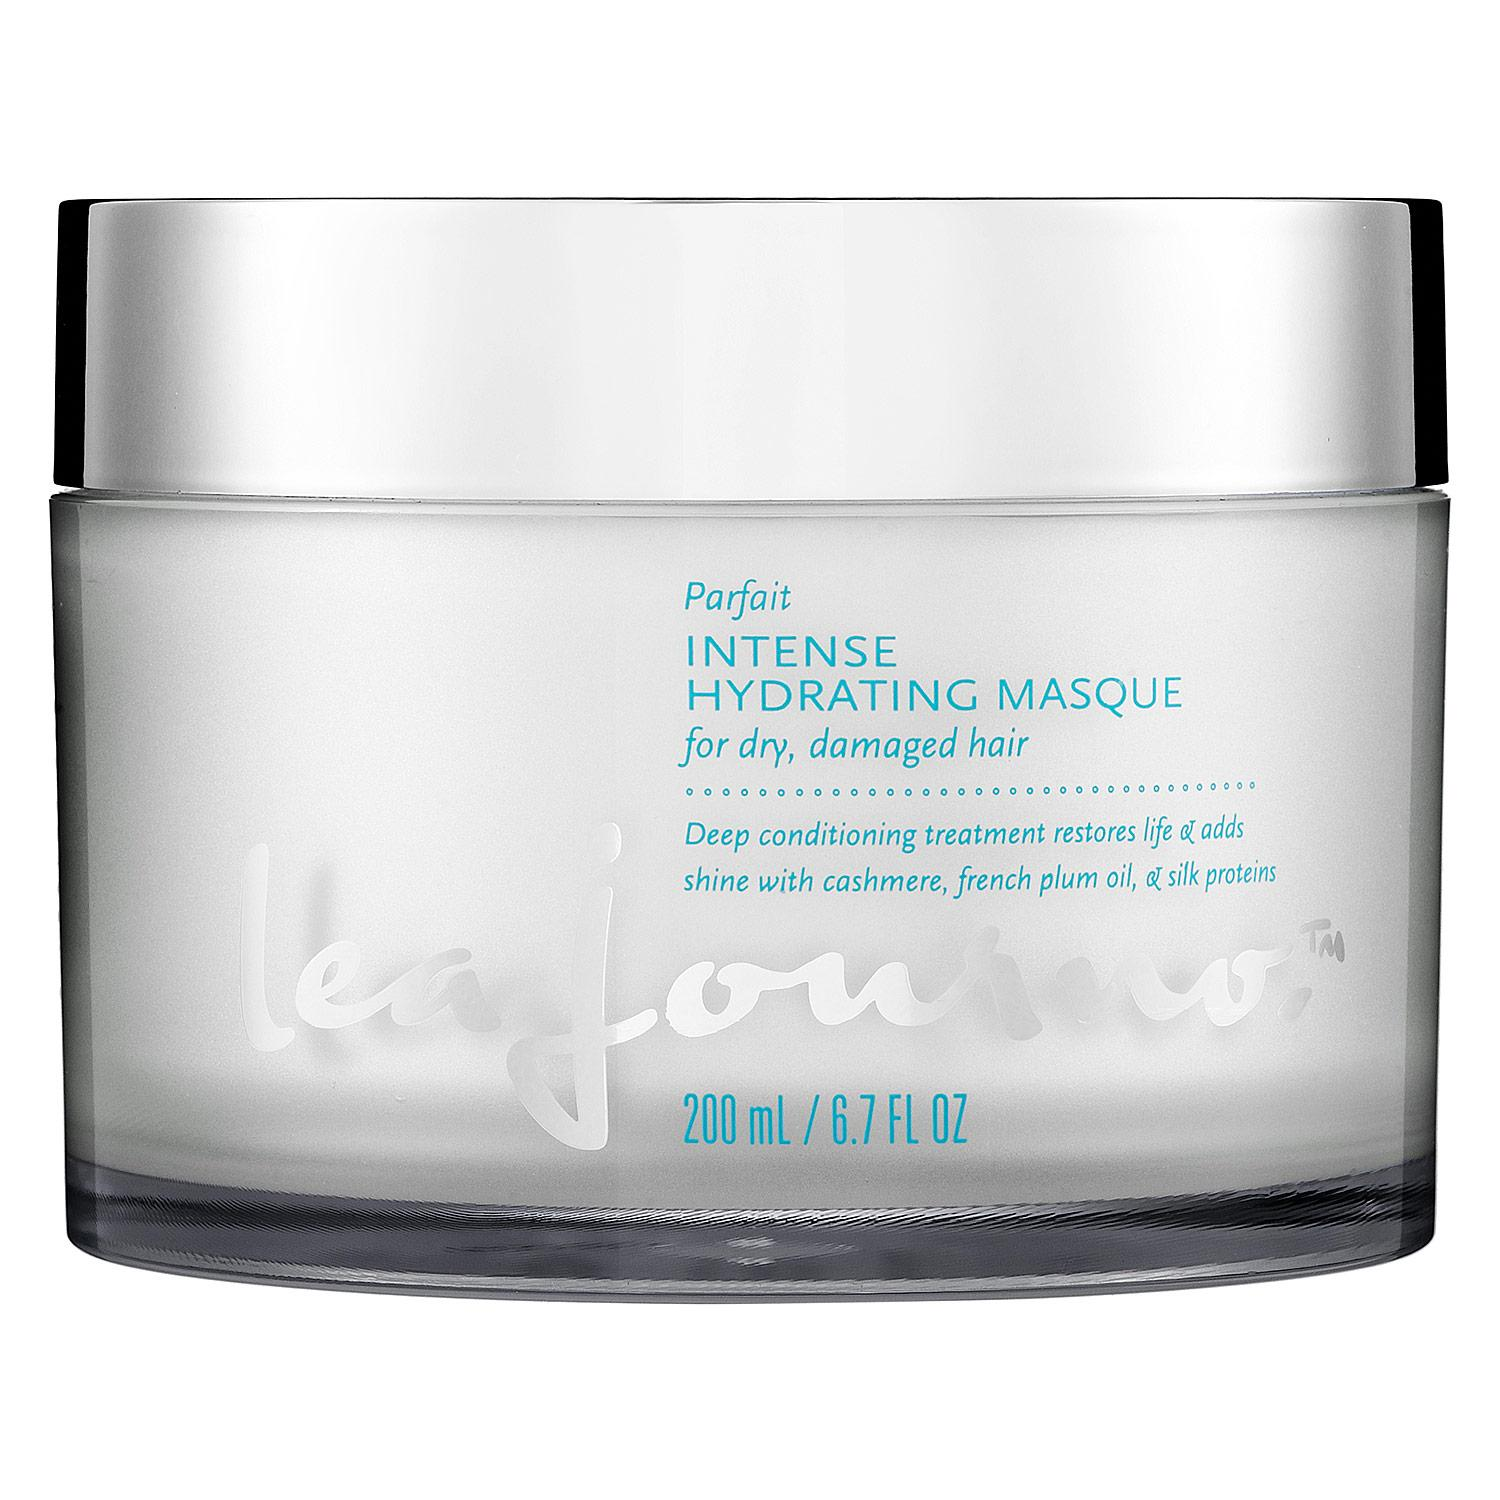 Parfait Intense Hydrating Masque